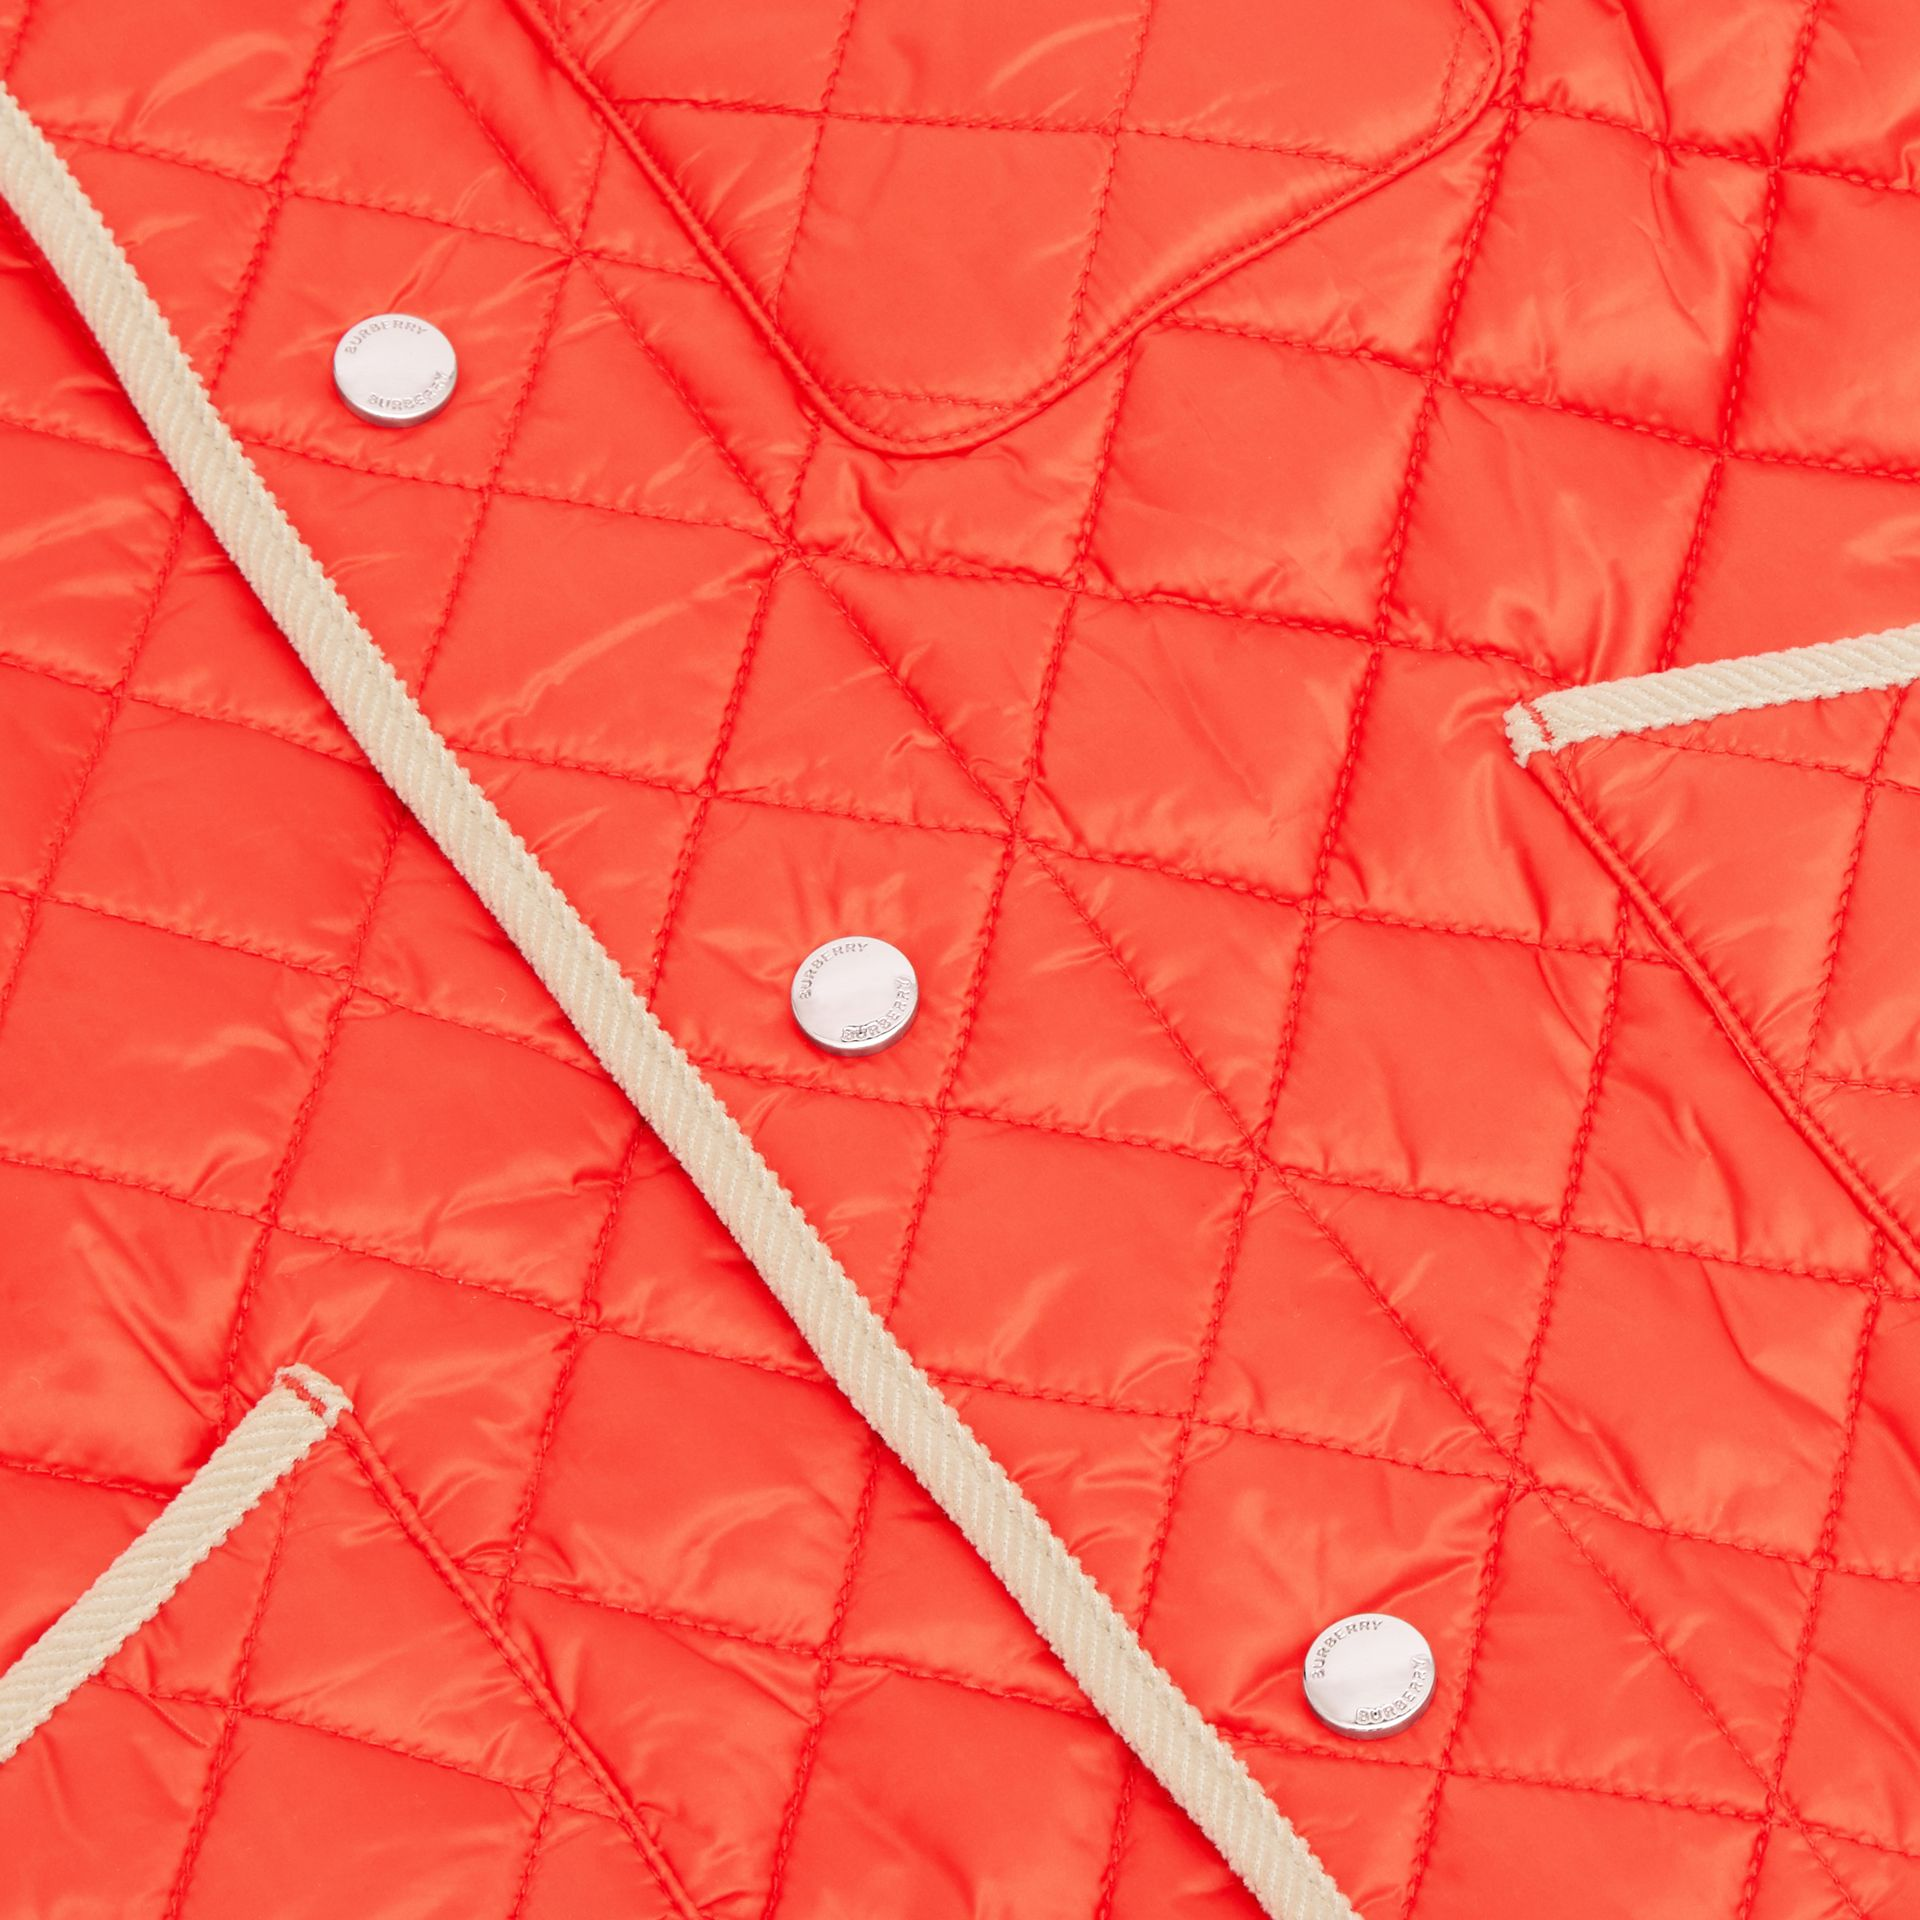 Corduroy Trim Lightweight Diamond Quilted Jacket in Bright Coral Orange | Burberry - gallery image 1